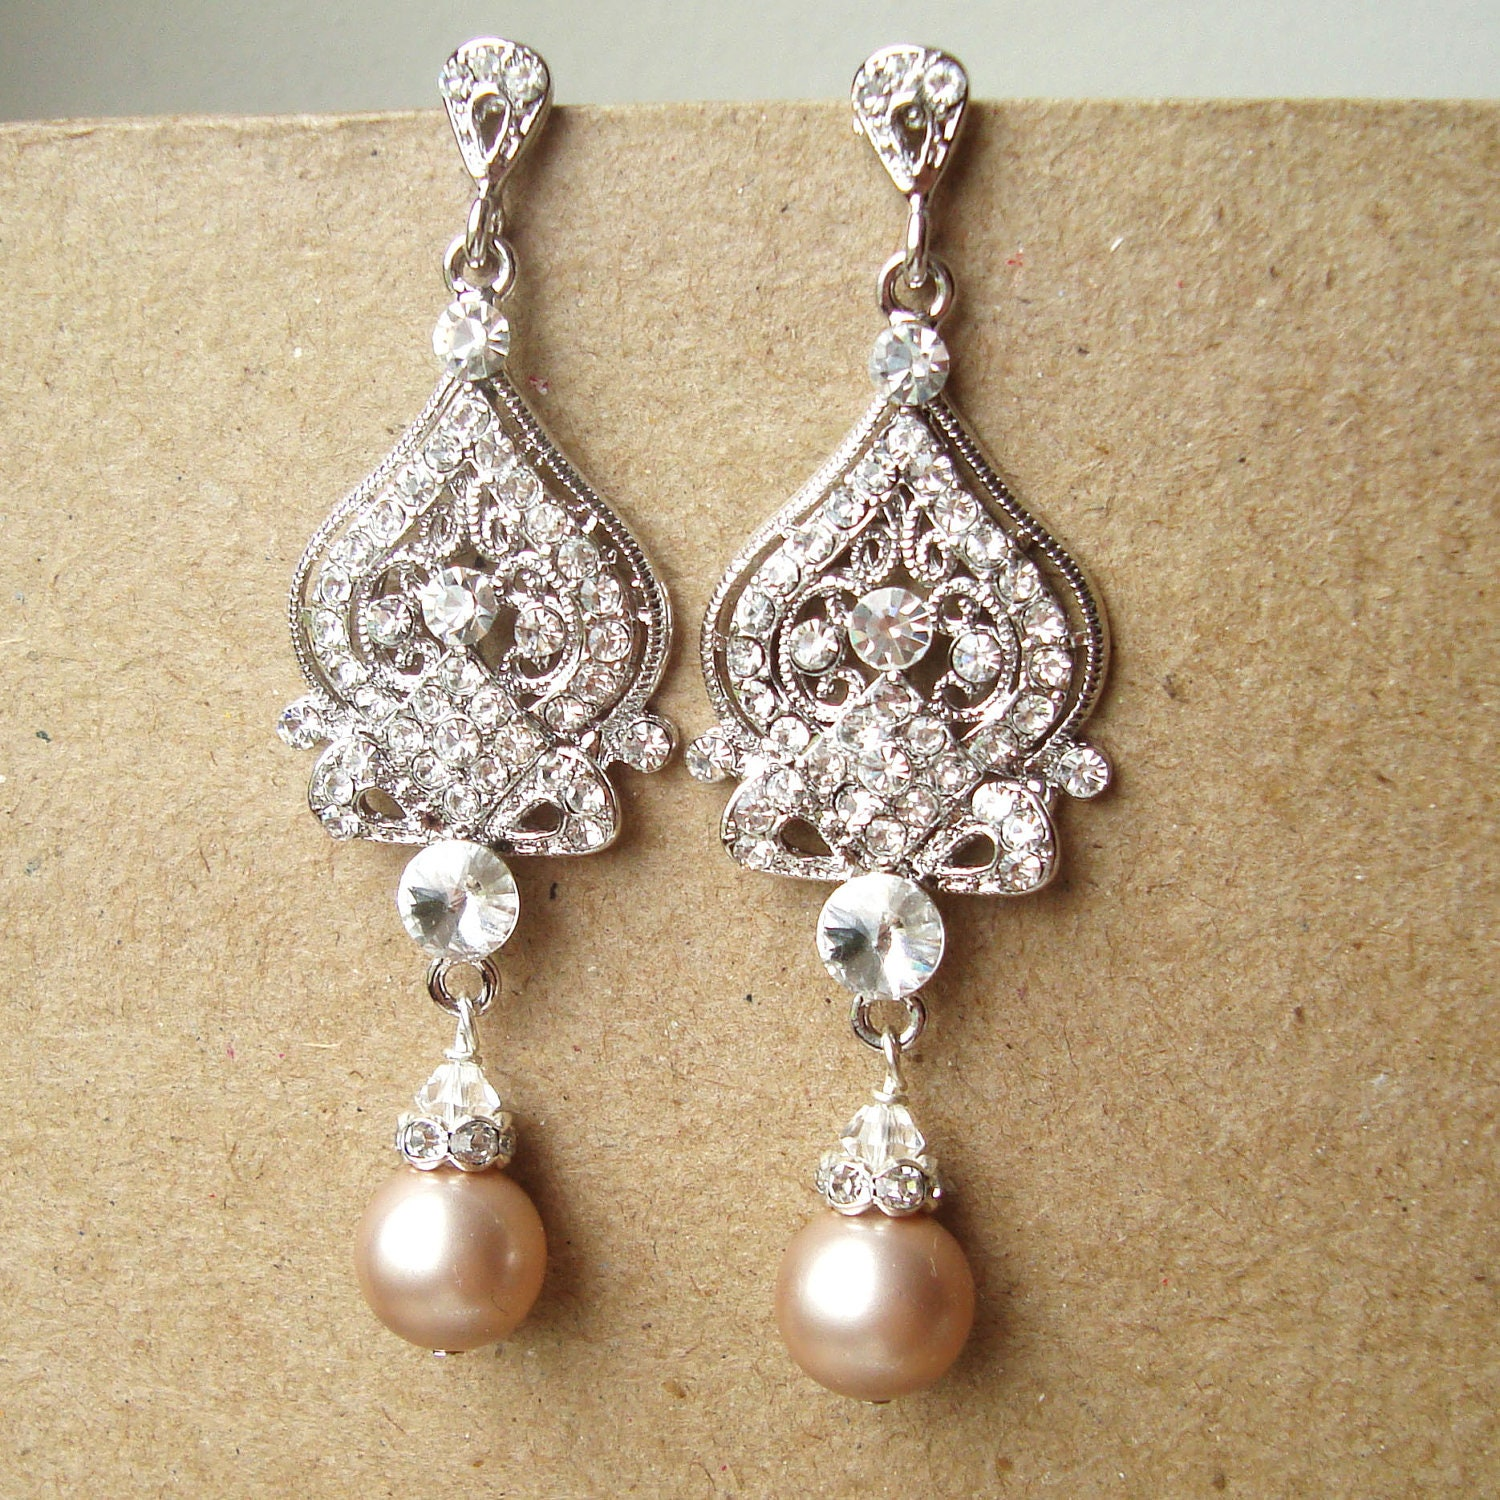 Champagne wedding earrings art deco bridal earrings vintage for Jewelry for champagne wedding dress